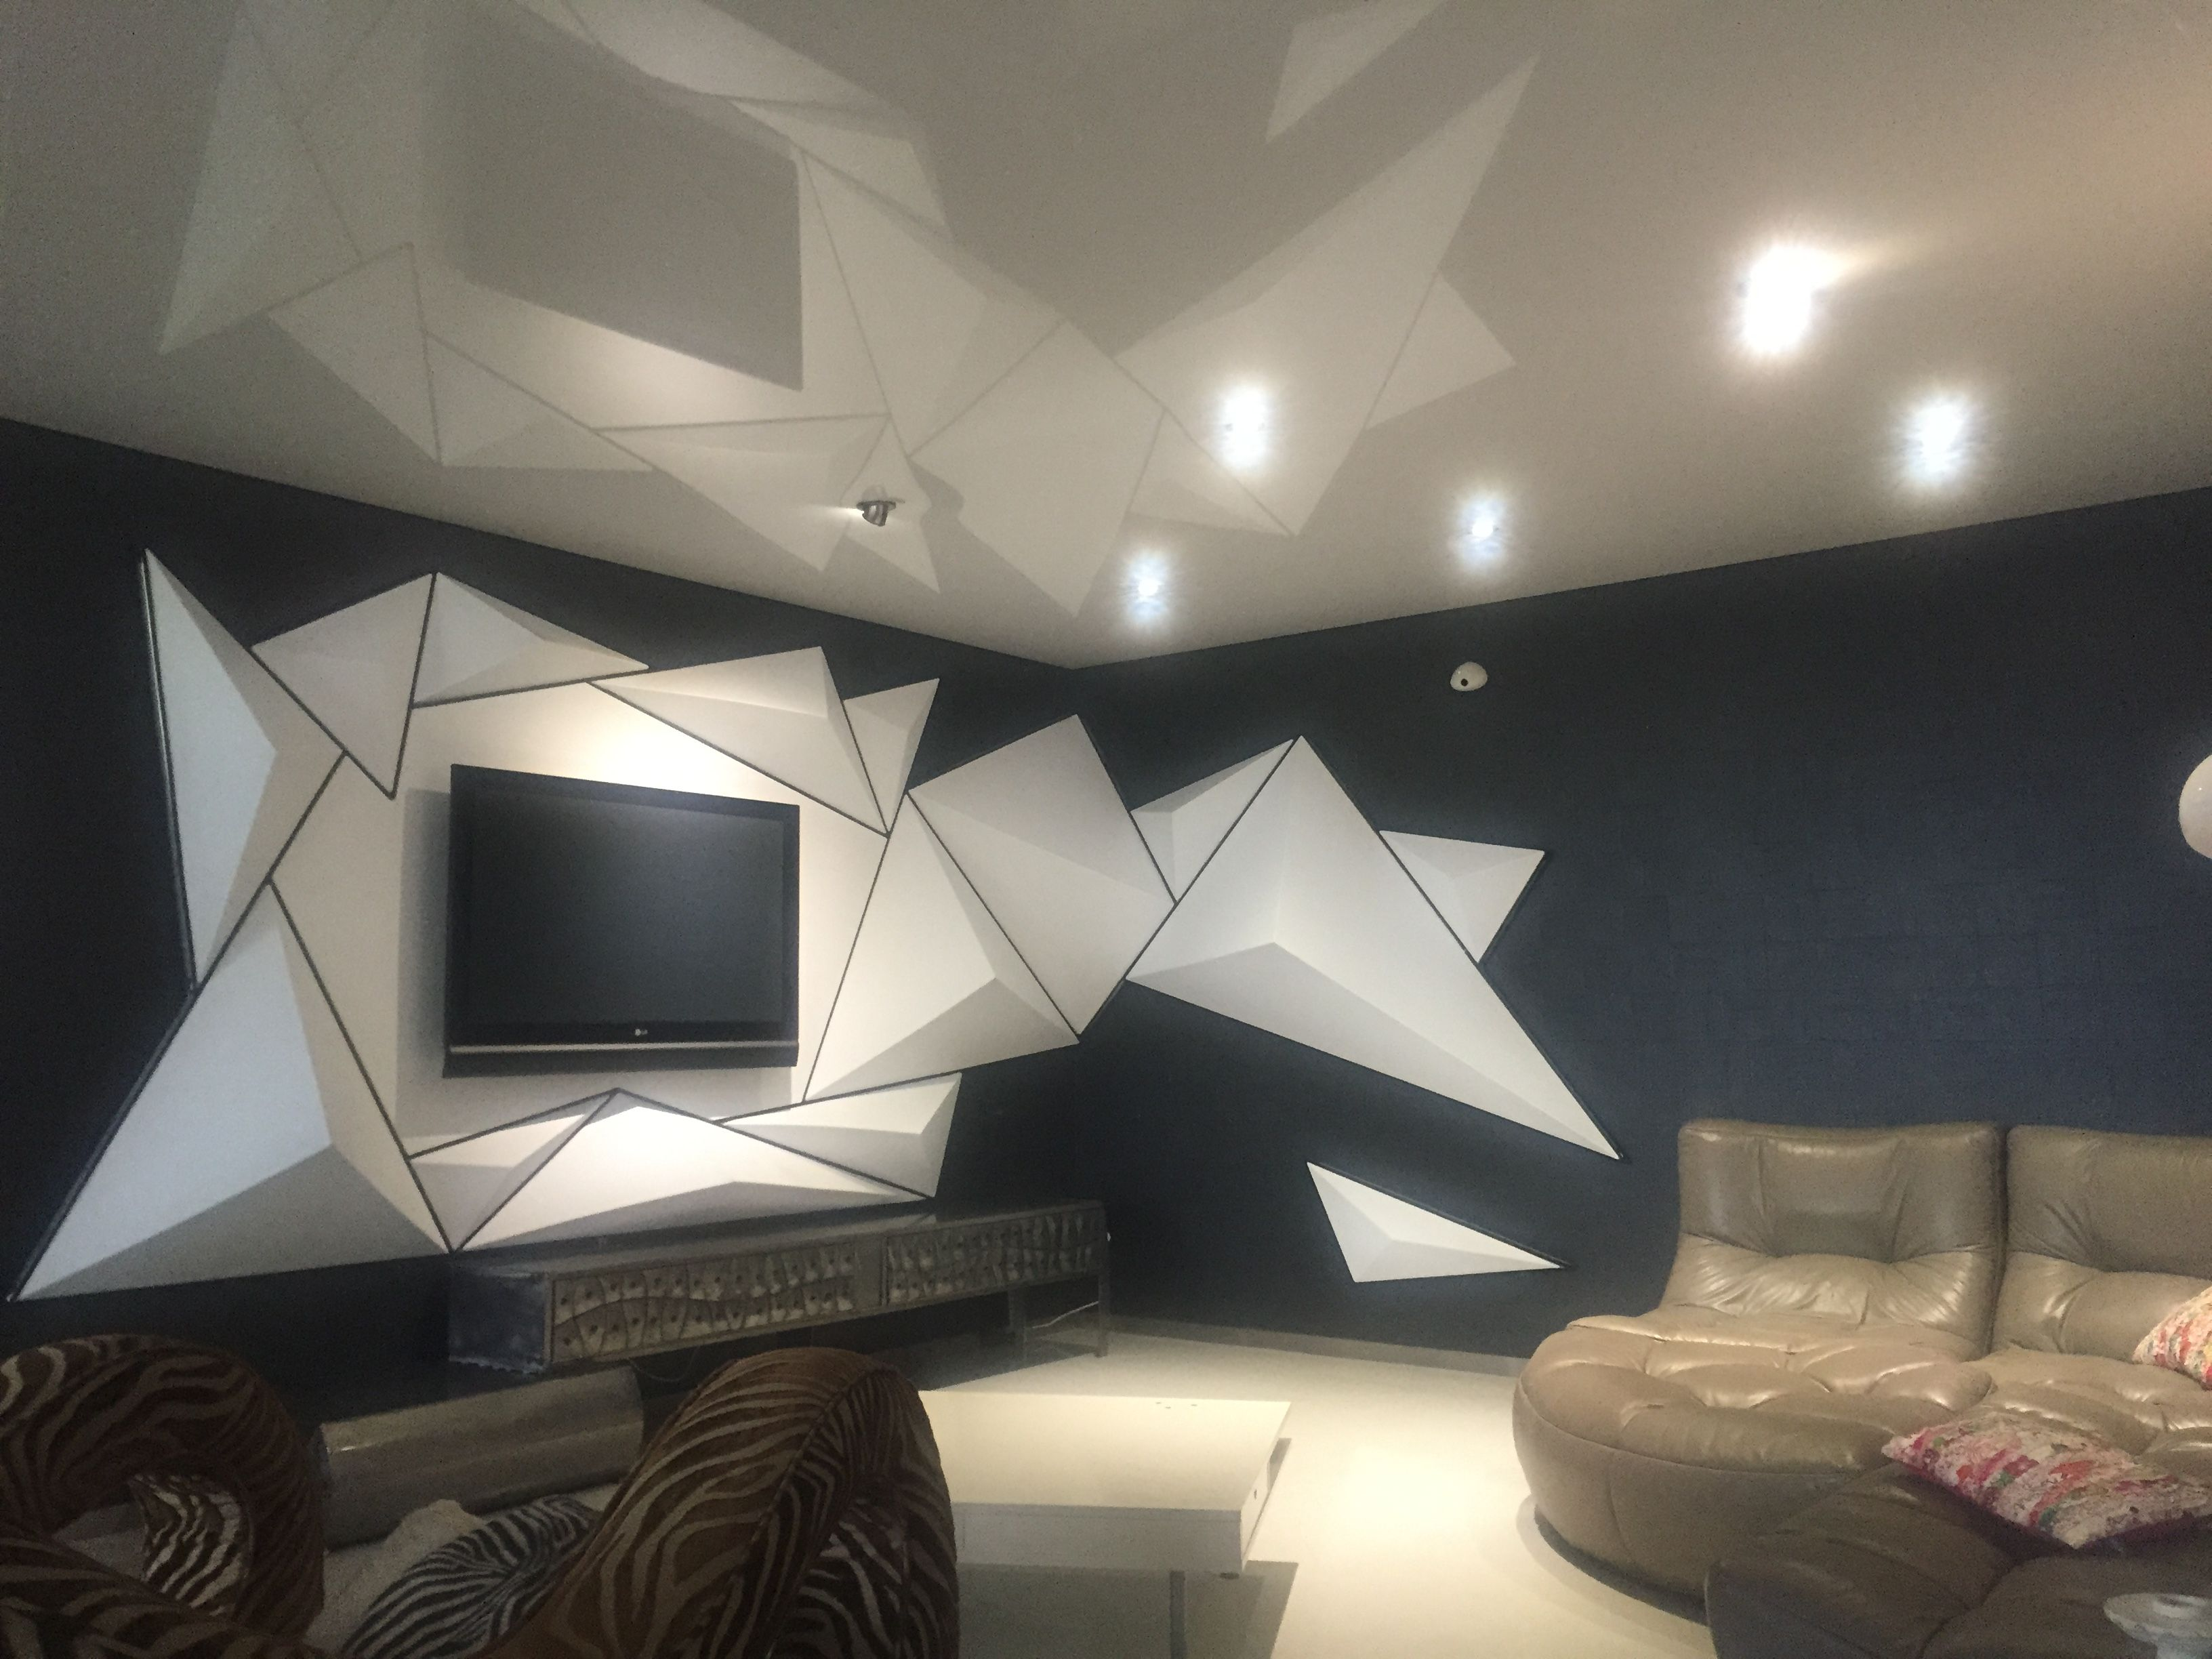 pose plafond tendu 31 d coration r novation by mieulet steeve pinterest. Black Bedroom Furniture Sets. Home Design Ideas